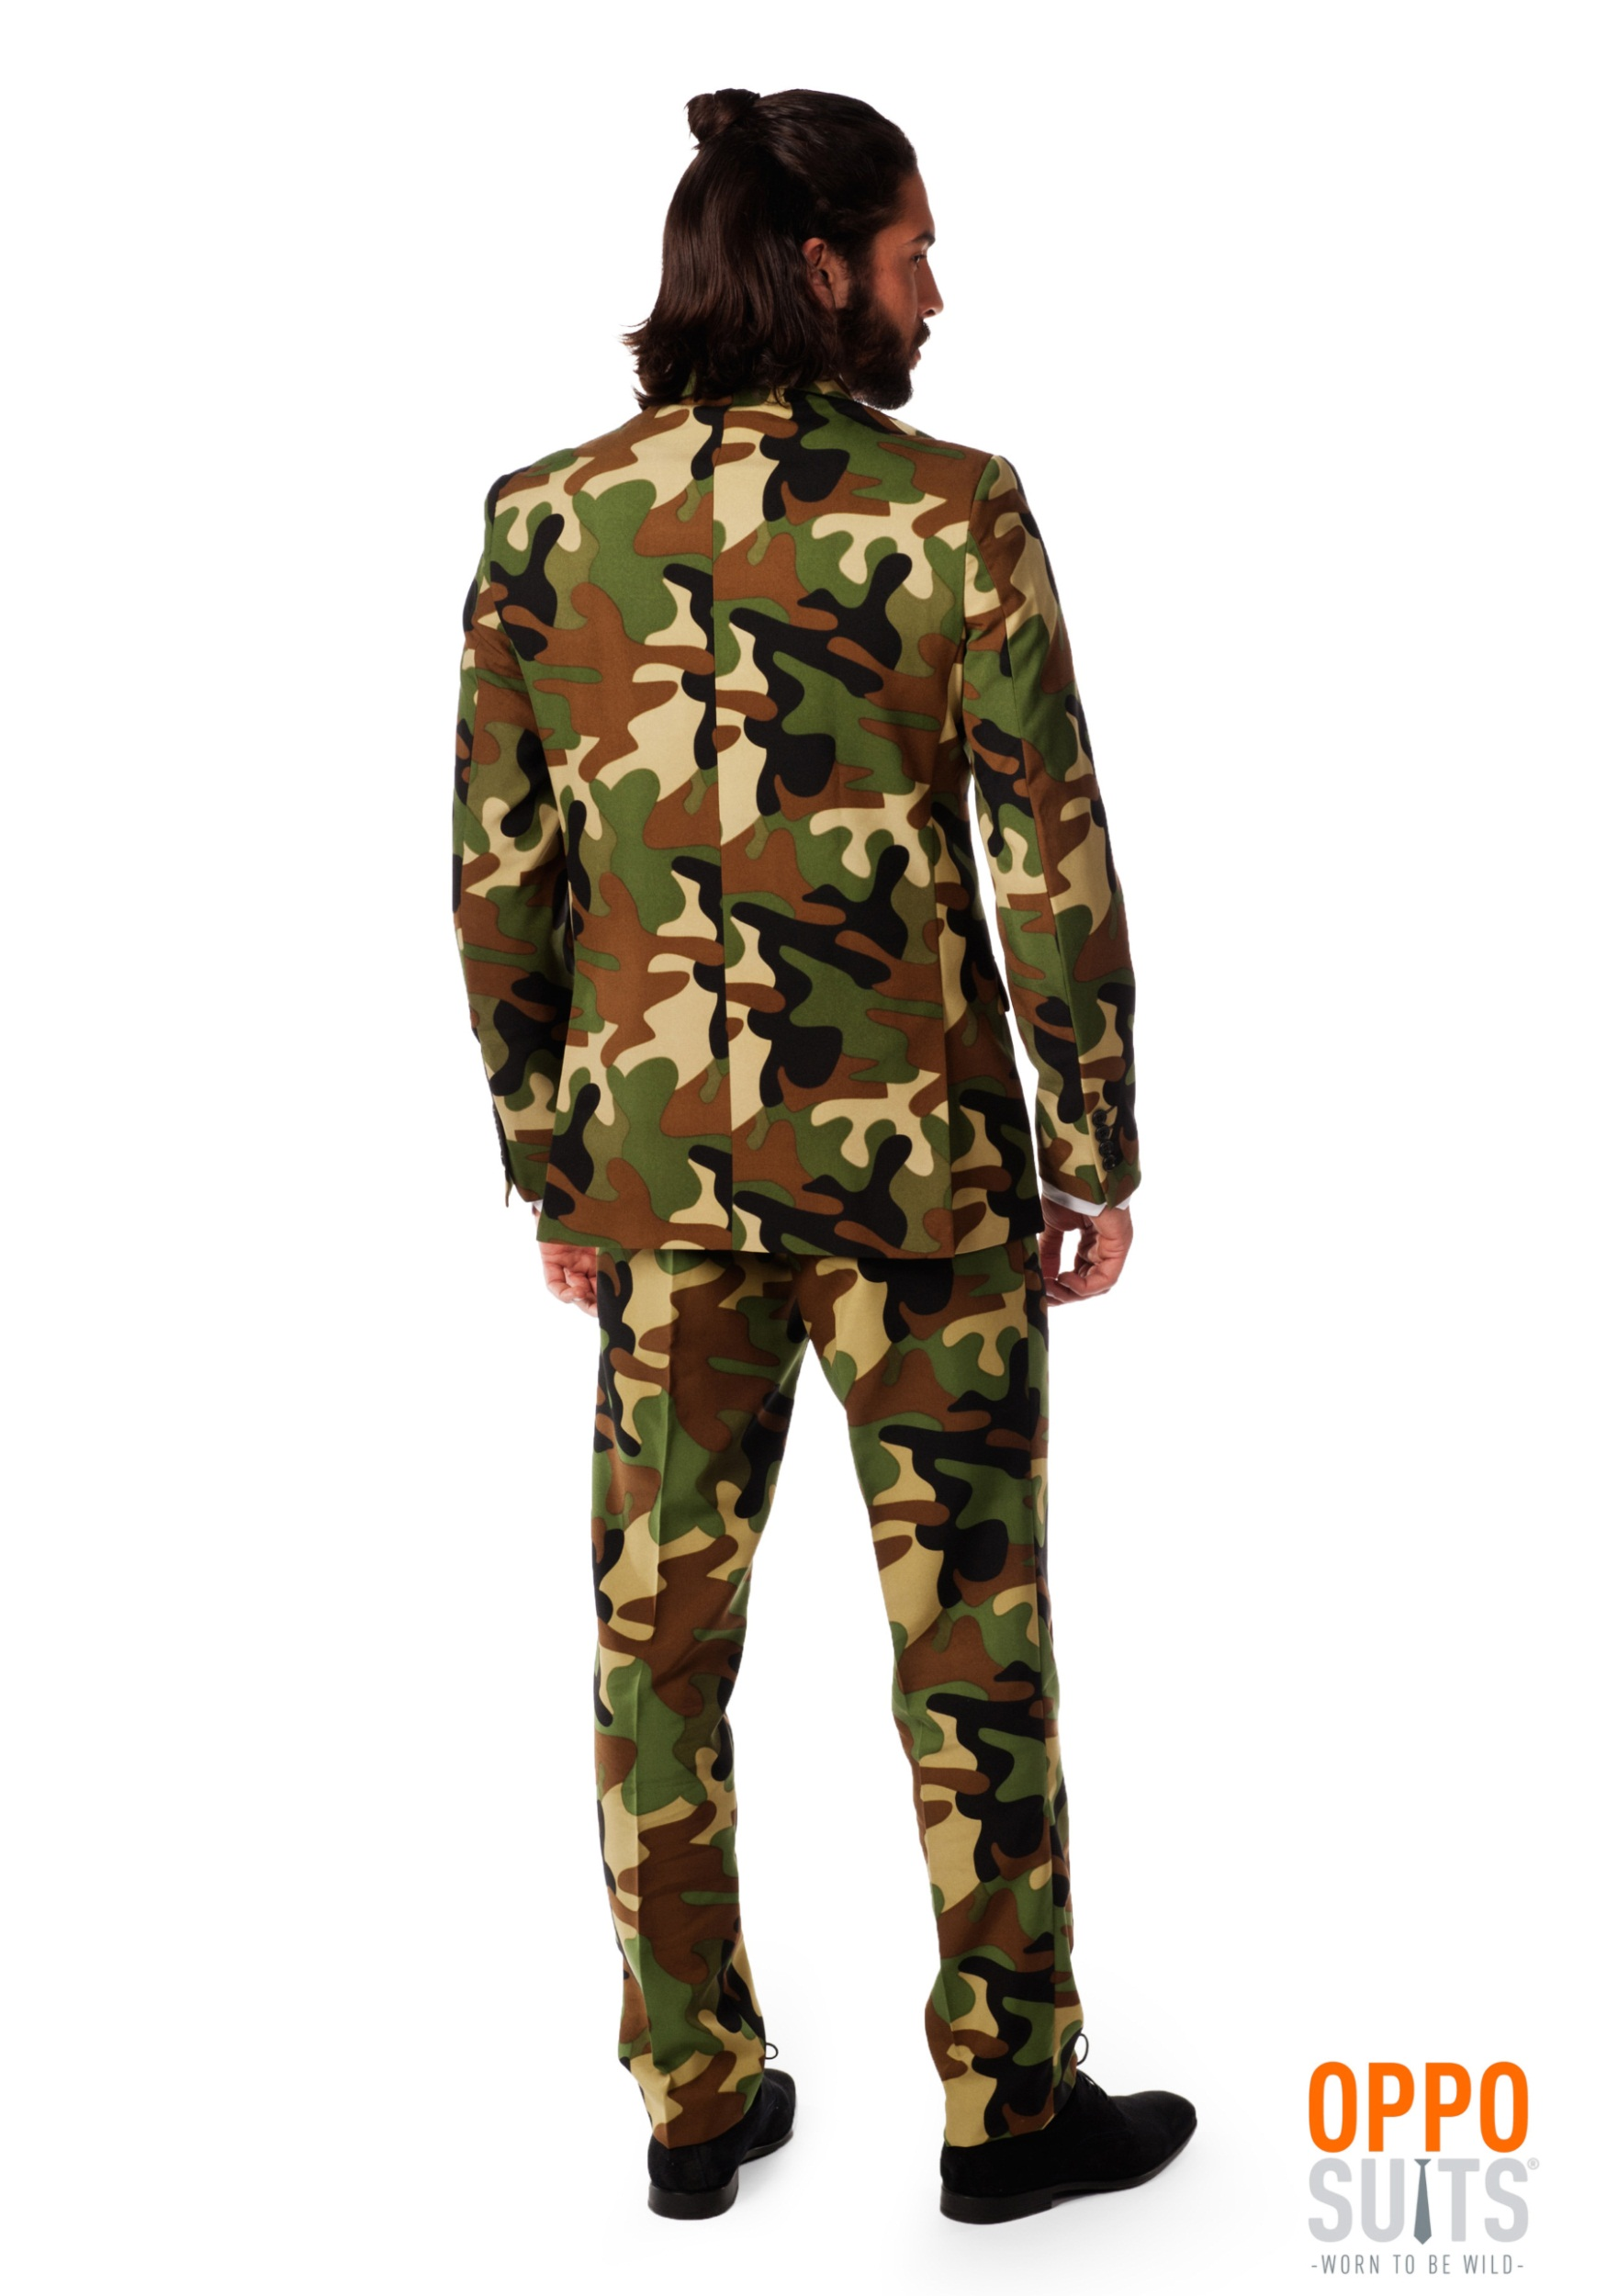 Mens OppoSuits Camo Costume Suit